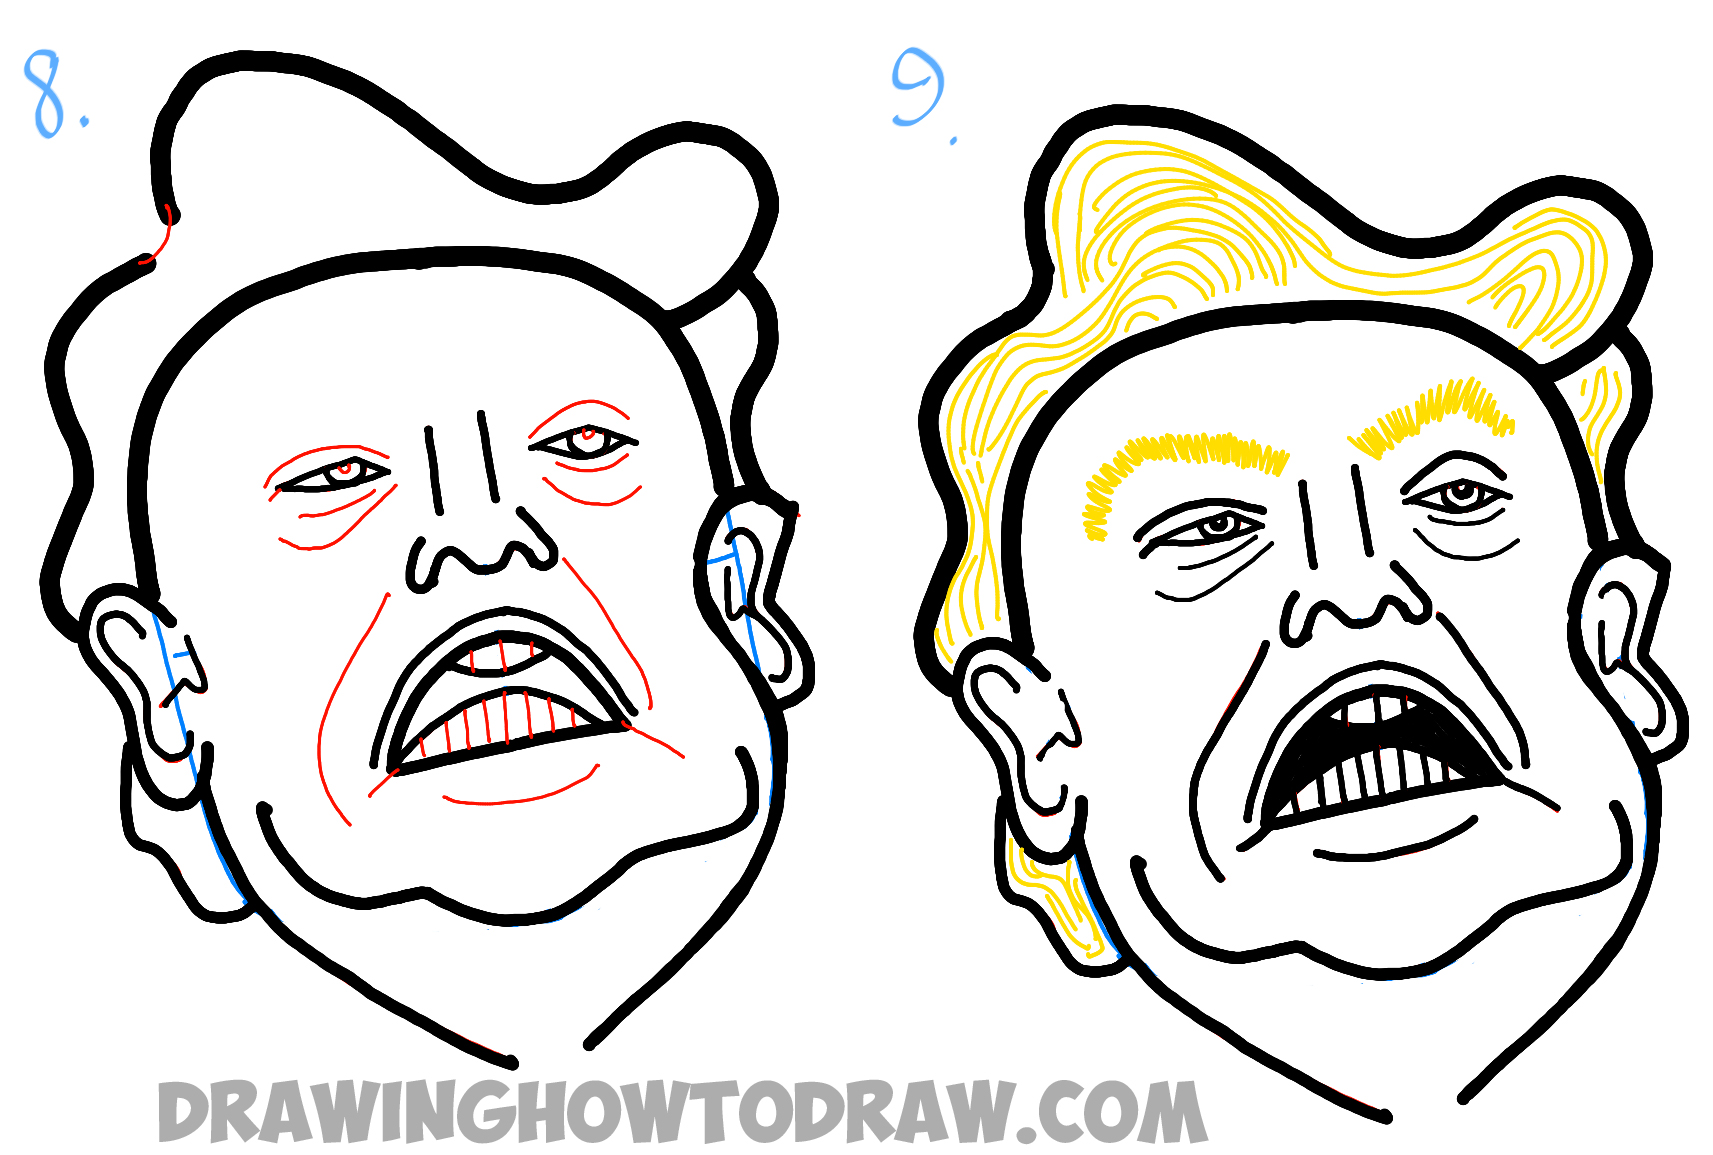 Learn How to Draw Donald Trump Caricature or Illustration - Easy Steps Drawing Lesson